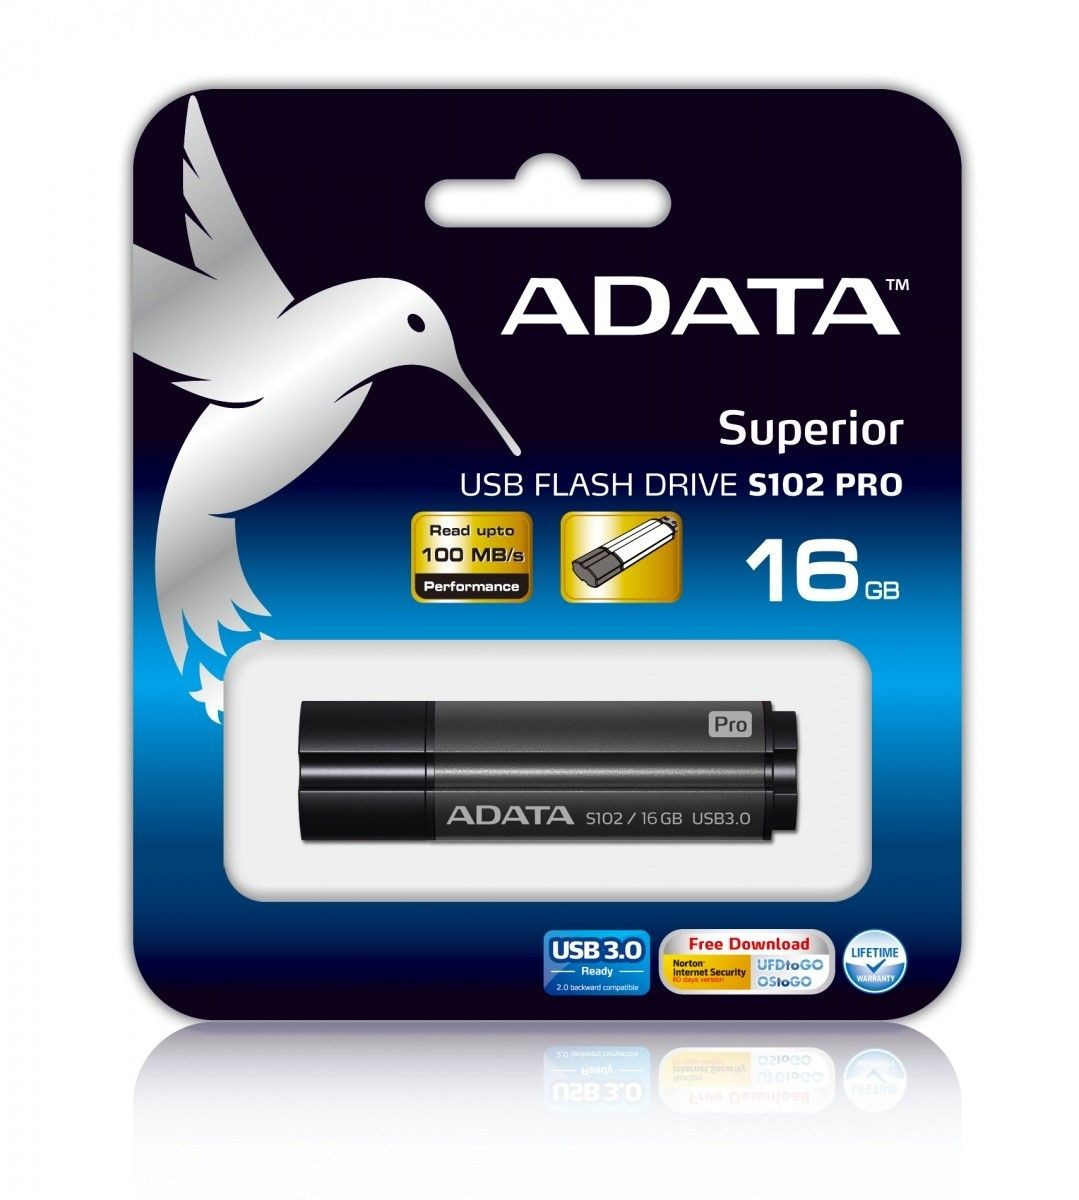 A-Data Adata pamięć USB S102 PRO 16GB USB 3.0 Titanium Szary ( Transfer do 90MB/s )